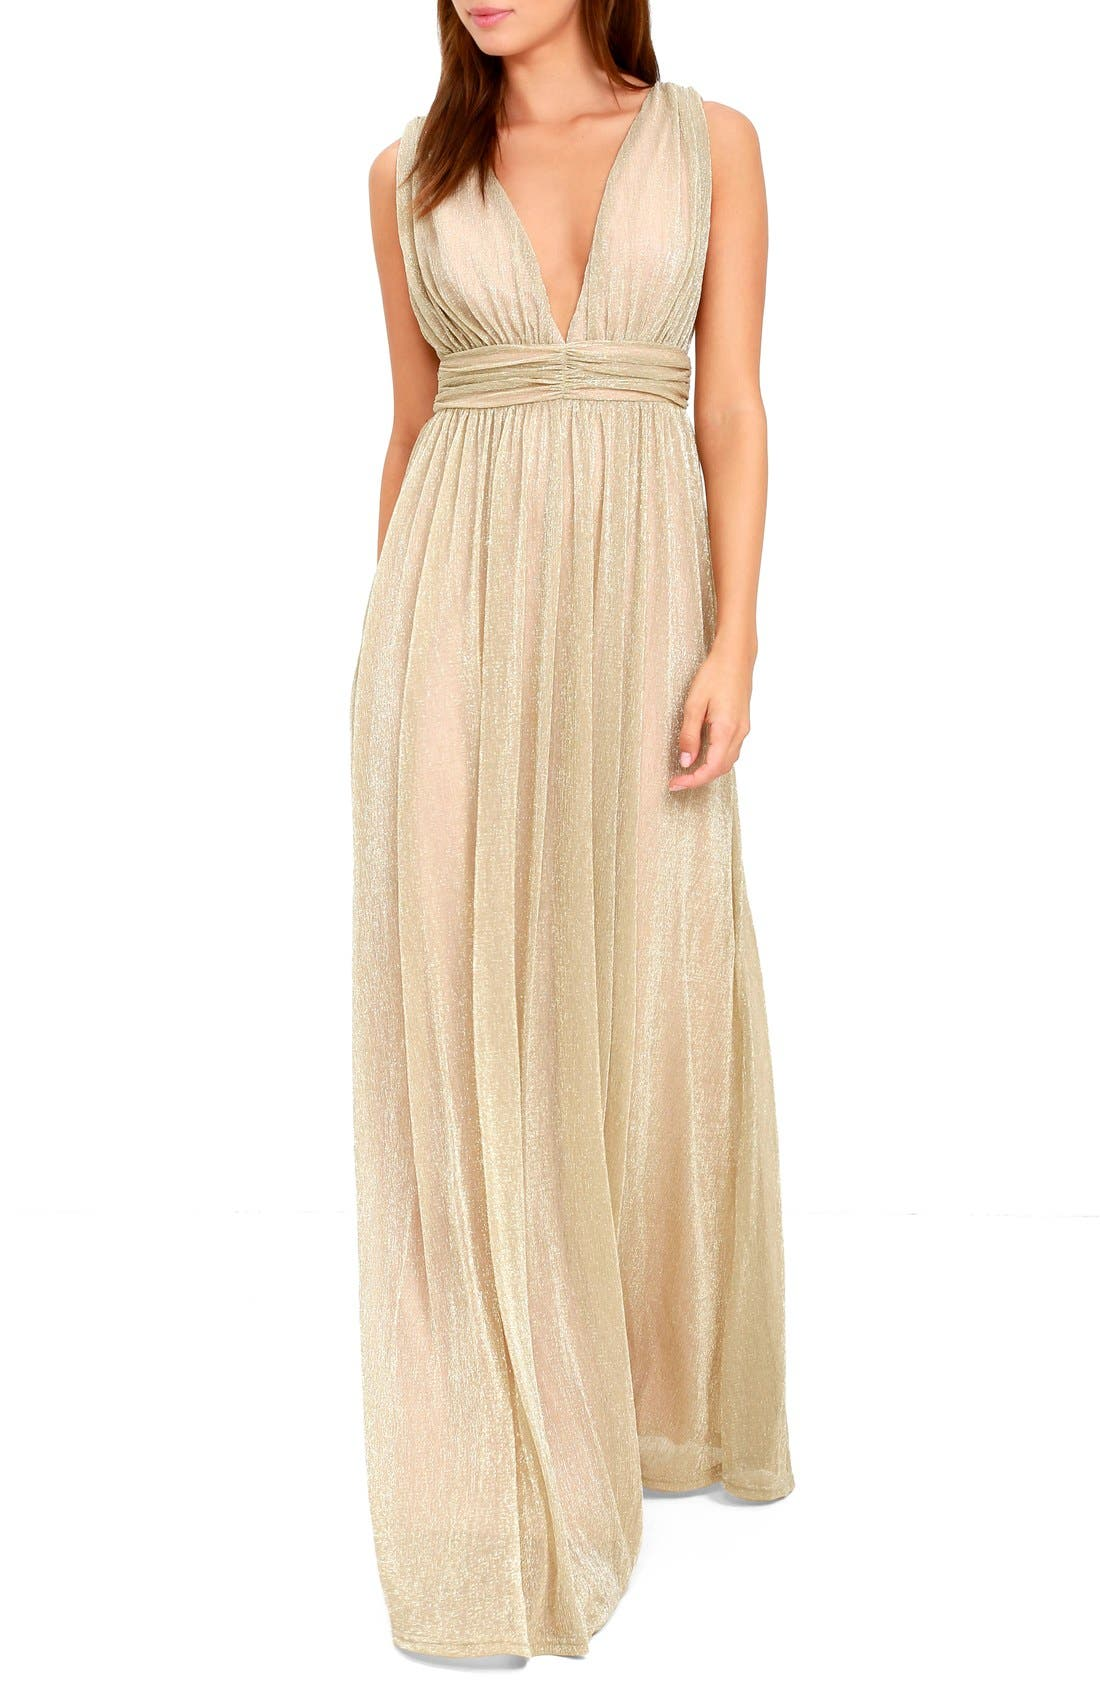 Lulus Plunging Neck Metallic Gown